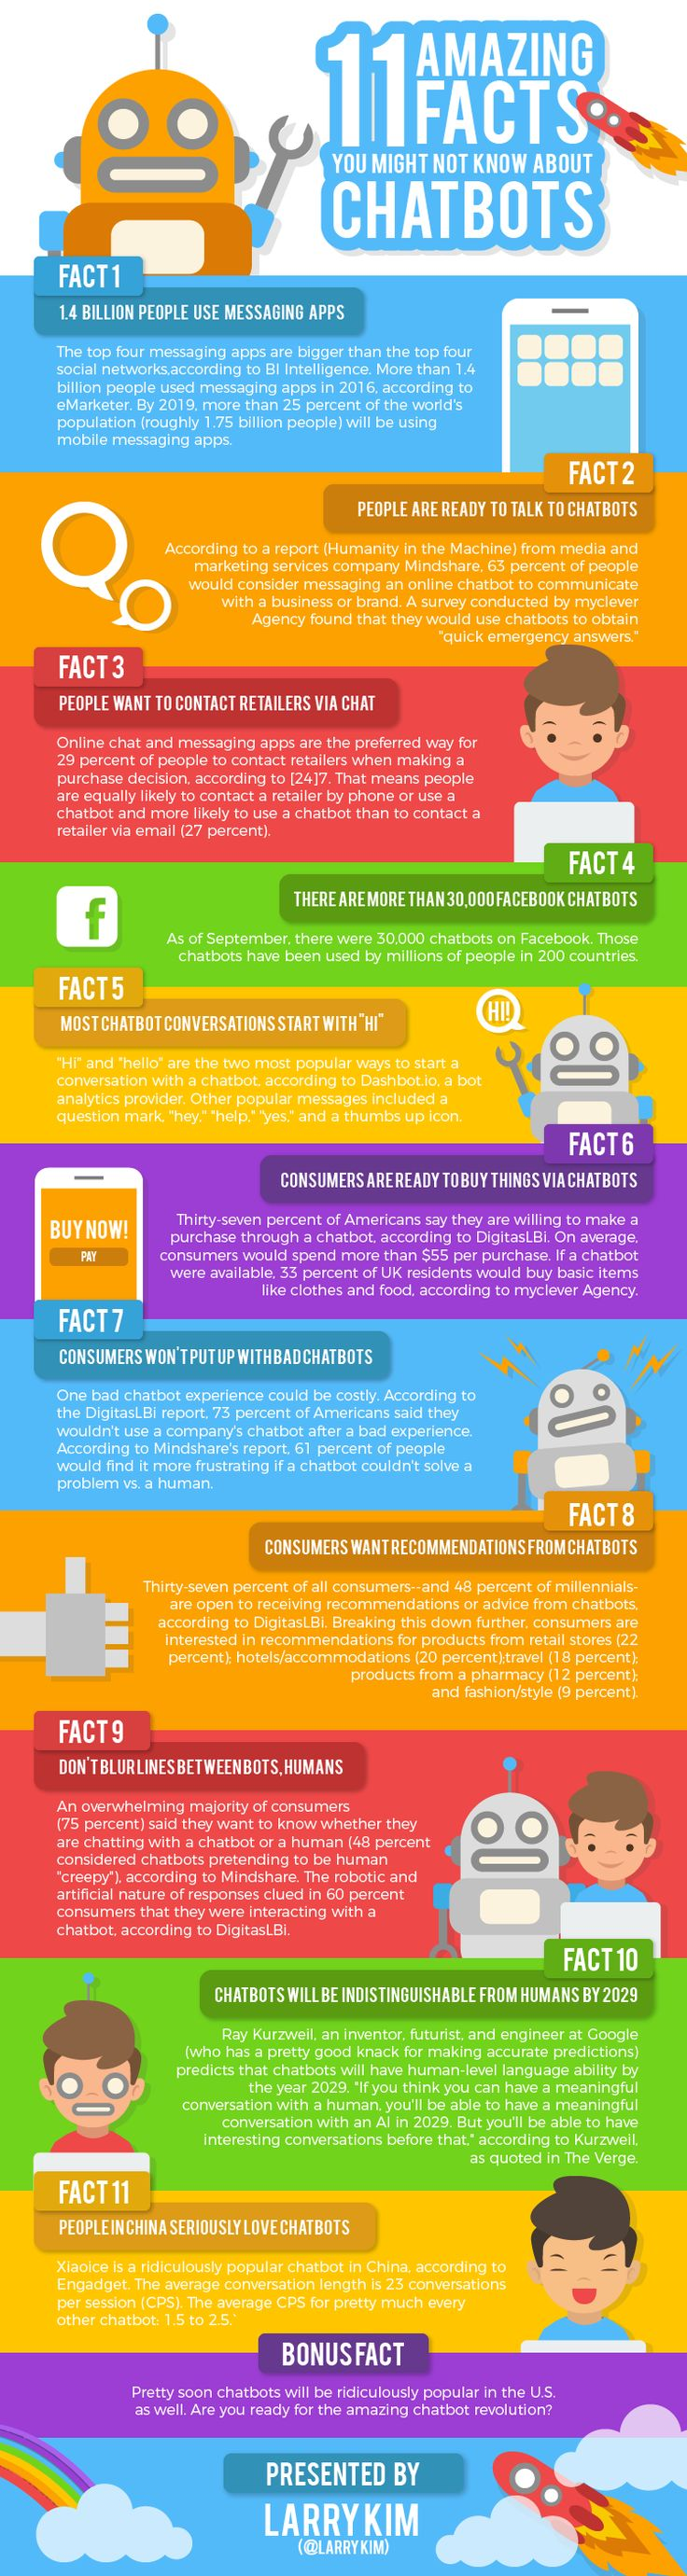 11 Amazing Facts You Might Not Know About Chatbots